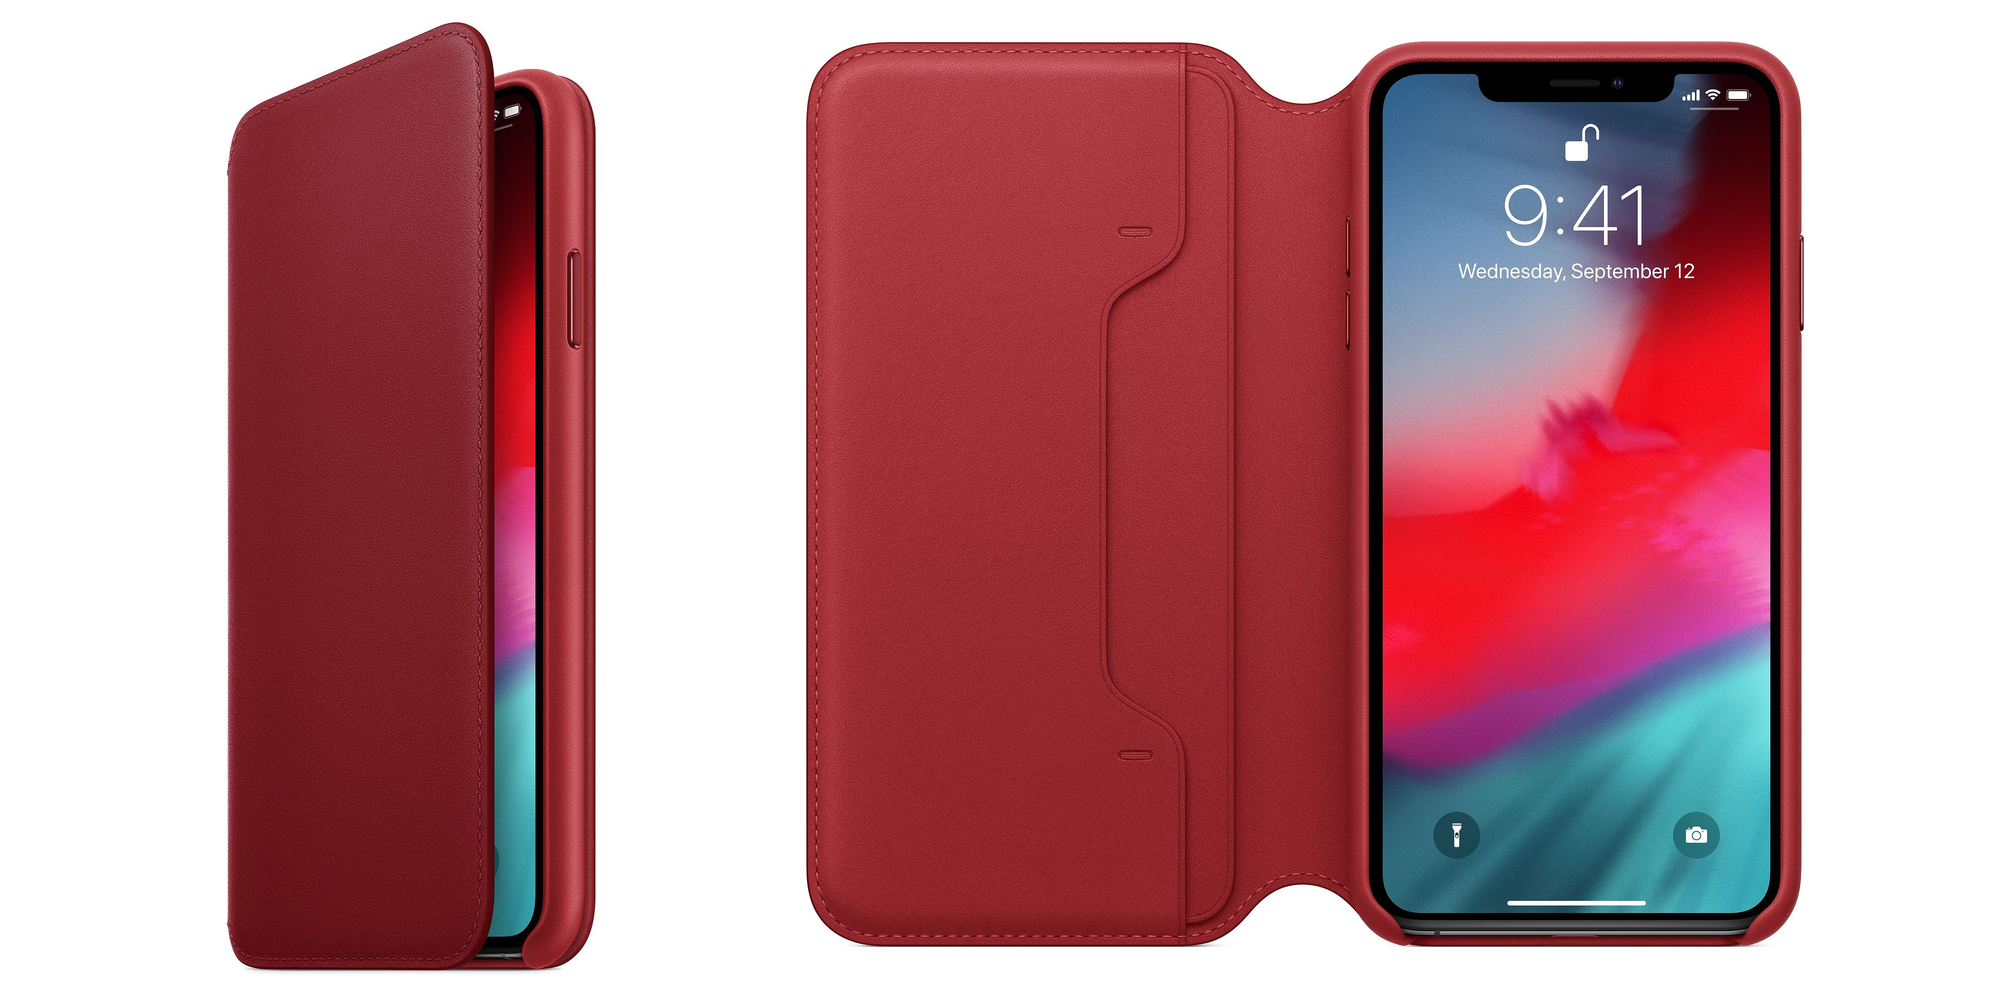 Wrap your iPhone XS Max in Apple's official (PRODUCT)RED Leather Folio at $95 (Reg. $129)